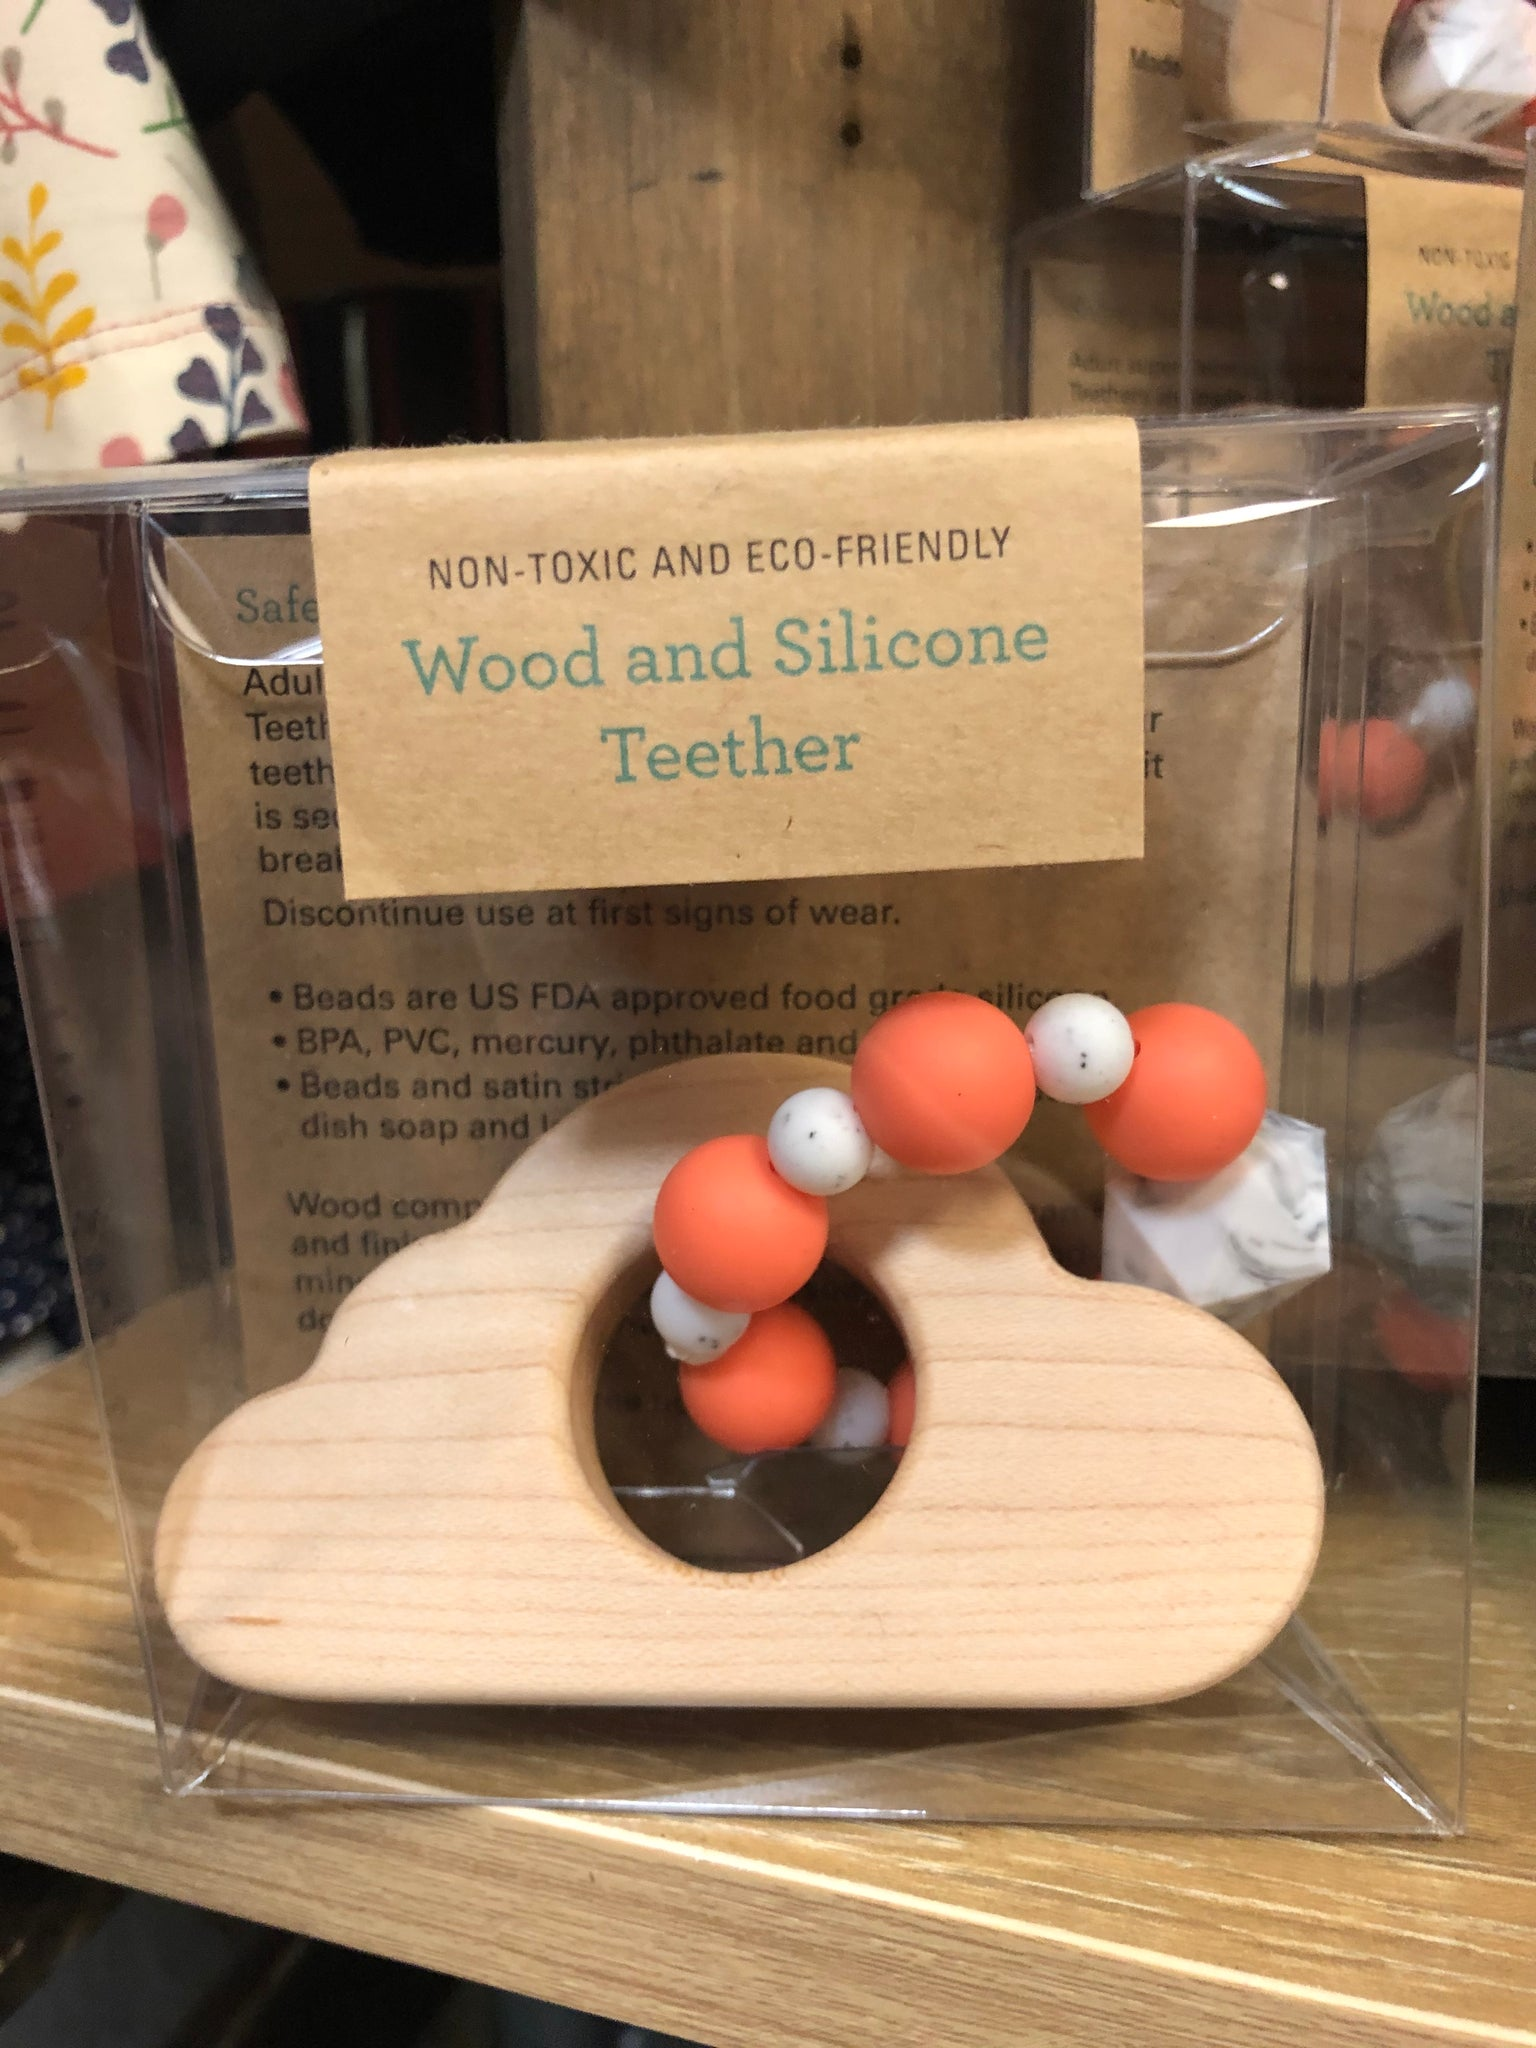 Wood & Silicone Teethers